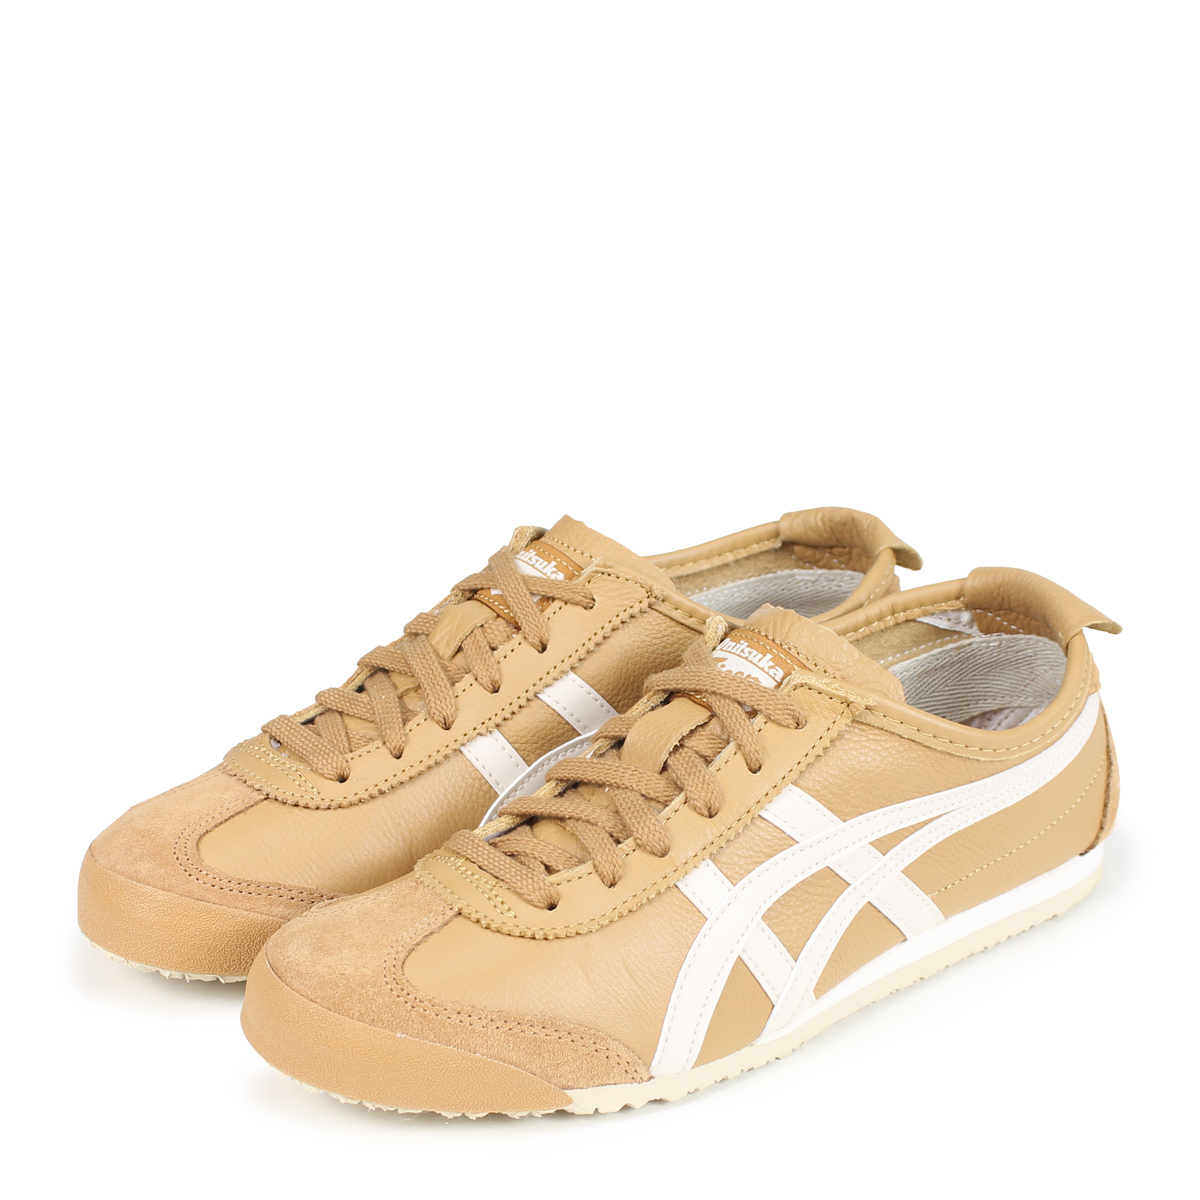 new arrival f753c dd409 Onitsuka Tiger MEXICO 66 Onitsuka tiger Mexico 66 men's lady's sneakers  1183A201-200 brown beige [187]